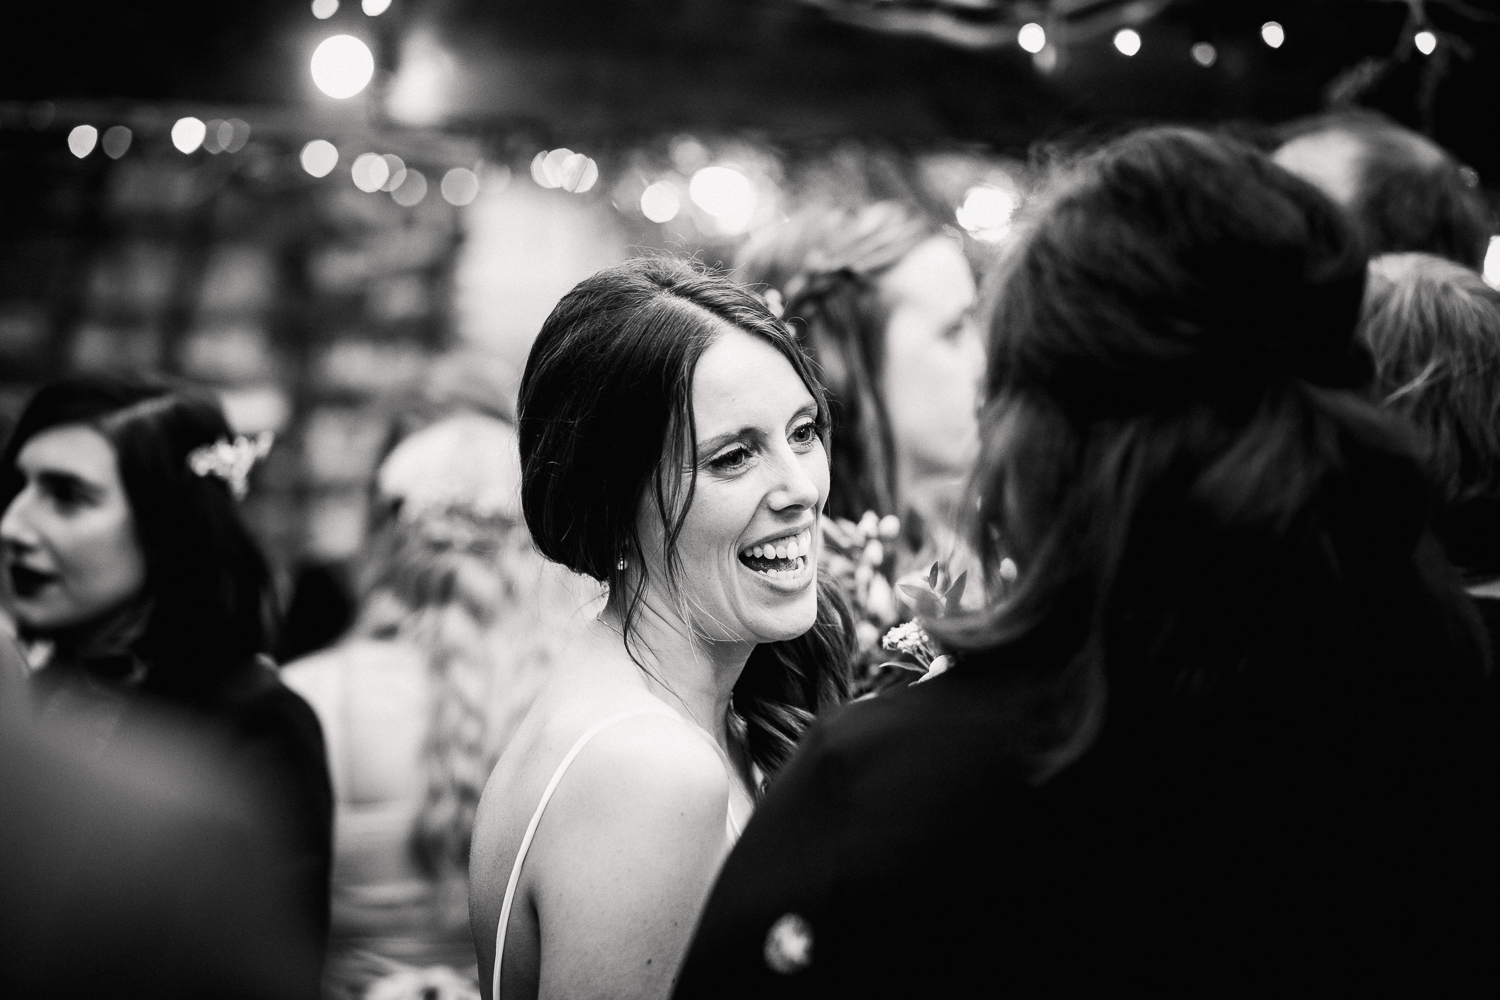 The_Old_Barn_North_Devon_Wedding_Photographer-33.jpg